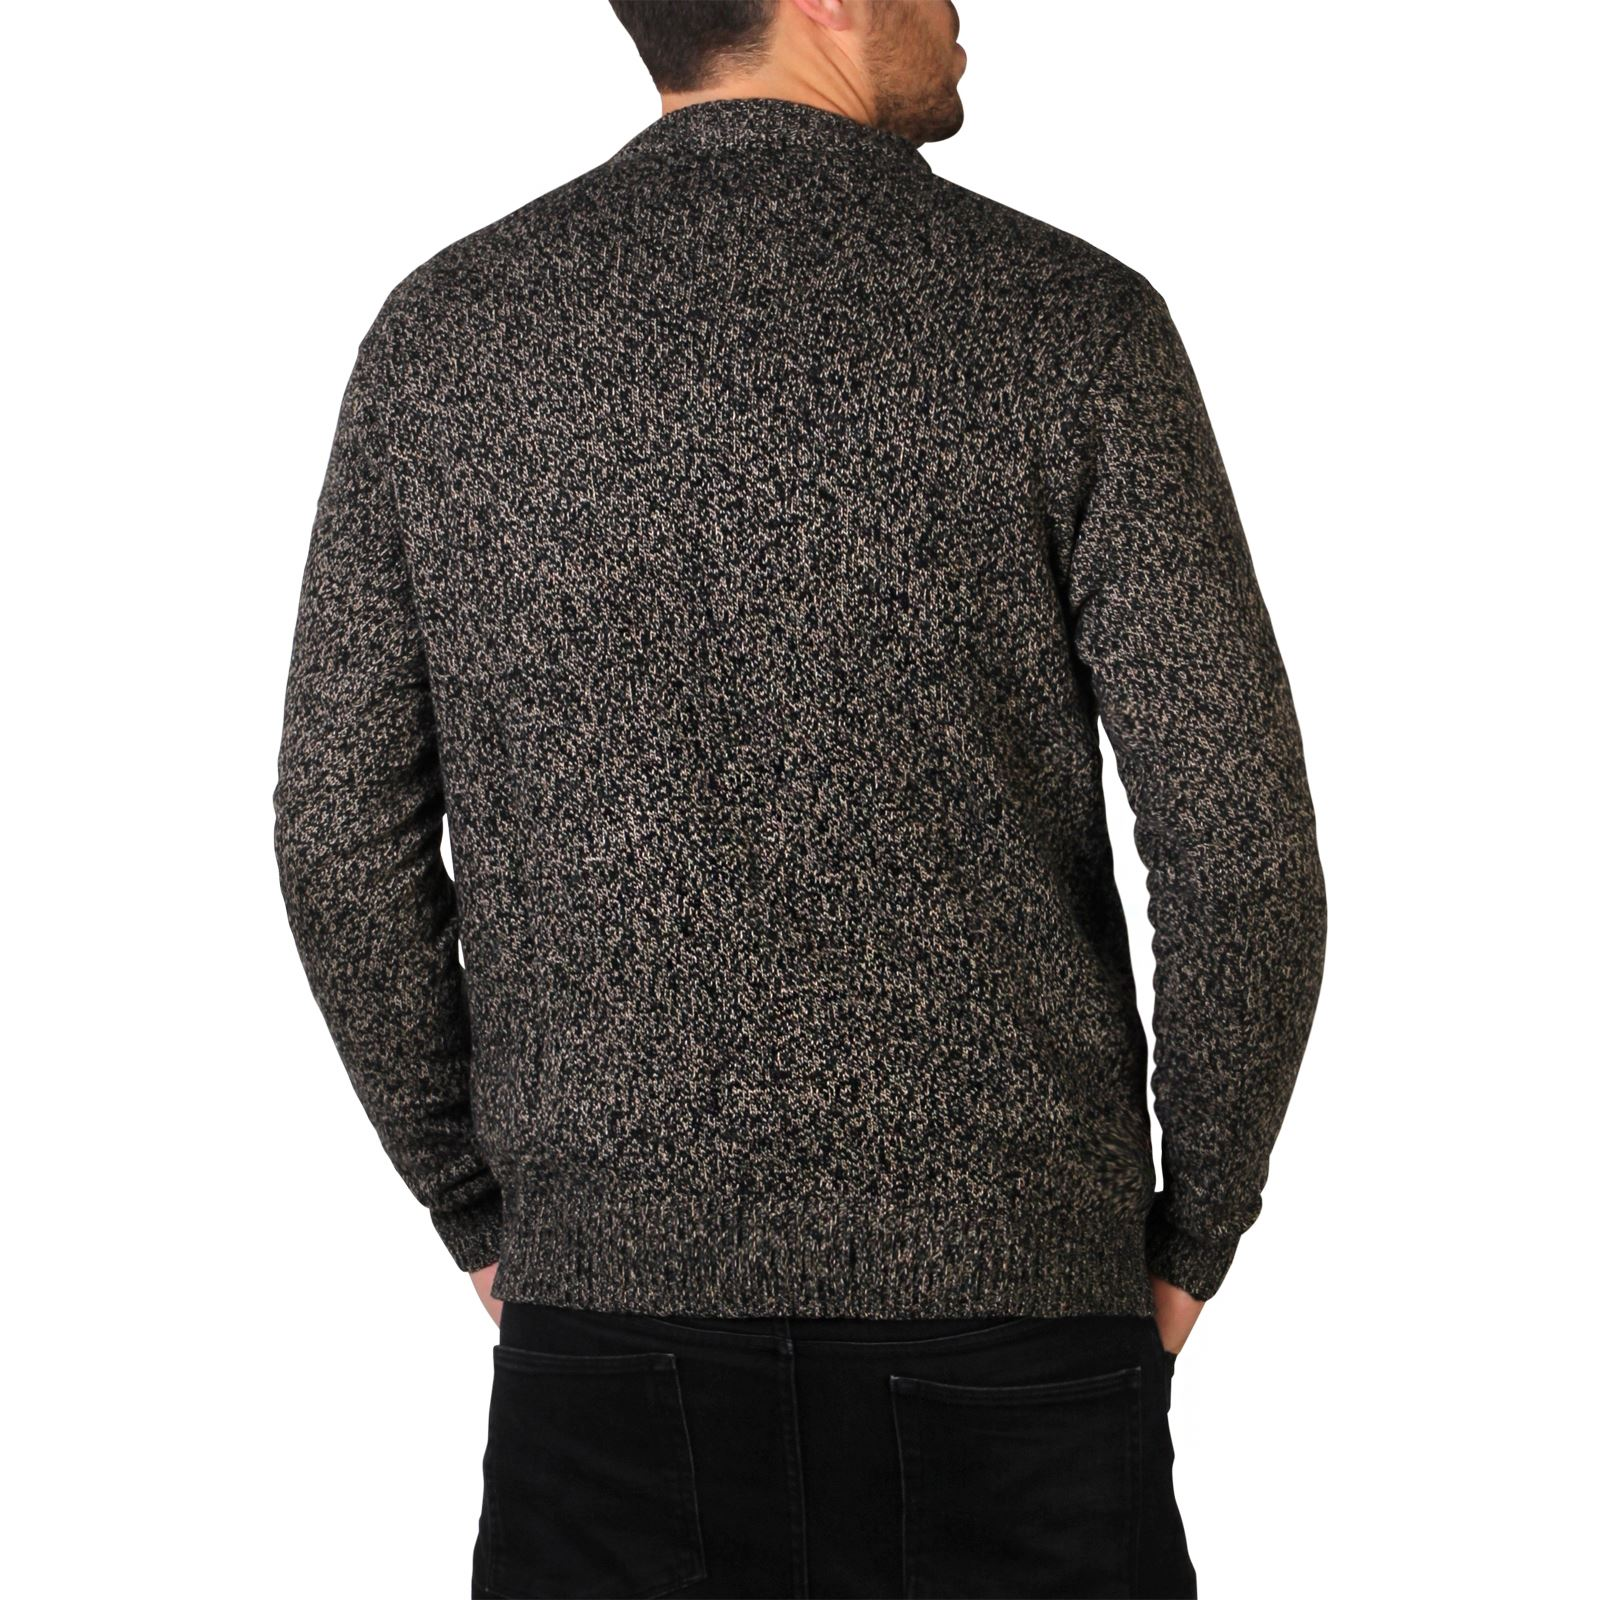 Unbound Merino offers the highest quality merino wool clothing. Pack light, save money & enjoy the comfort of our merino wool t-shirts, socks & underwear.